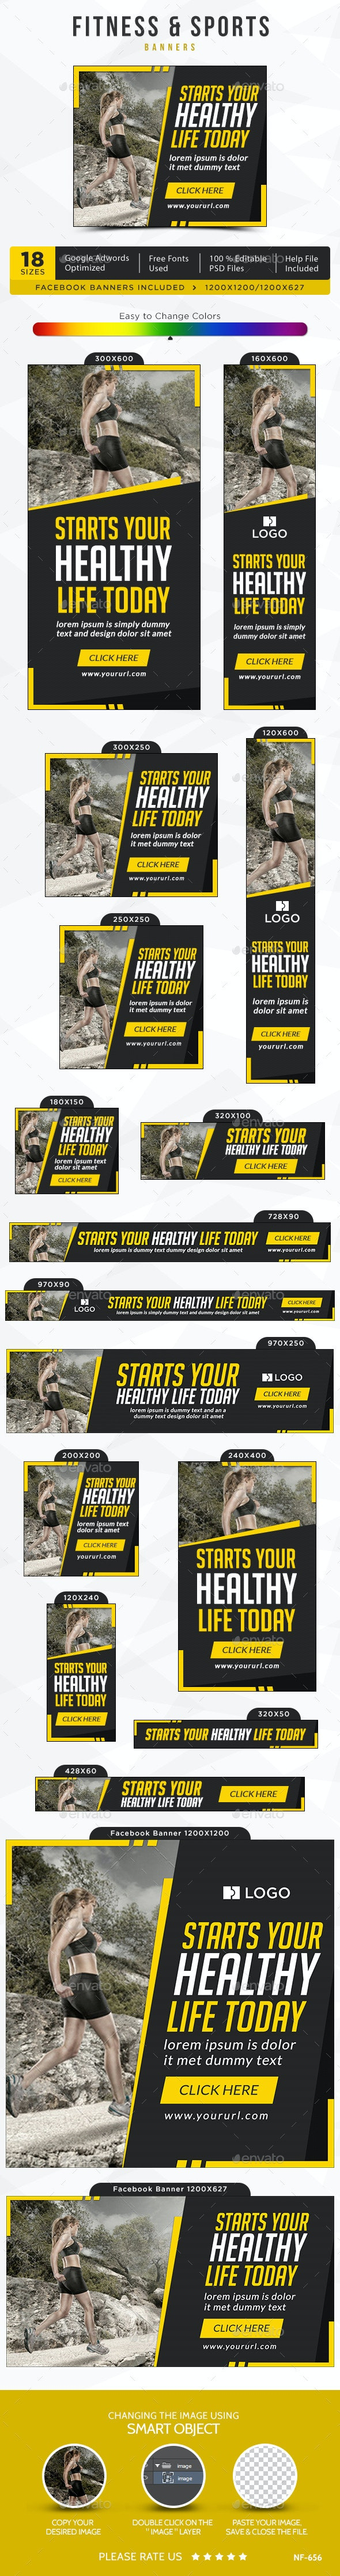 Fitness & Sports Banners - Banners & Ads Web Elements